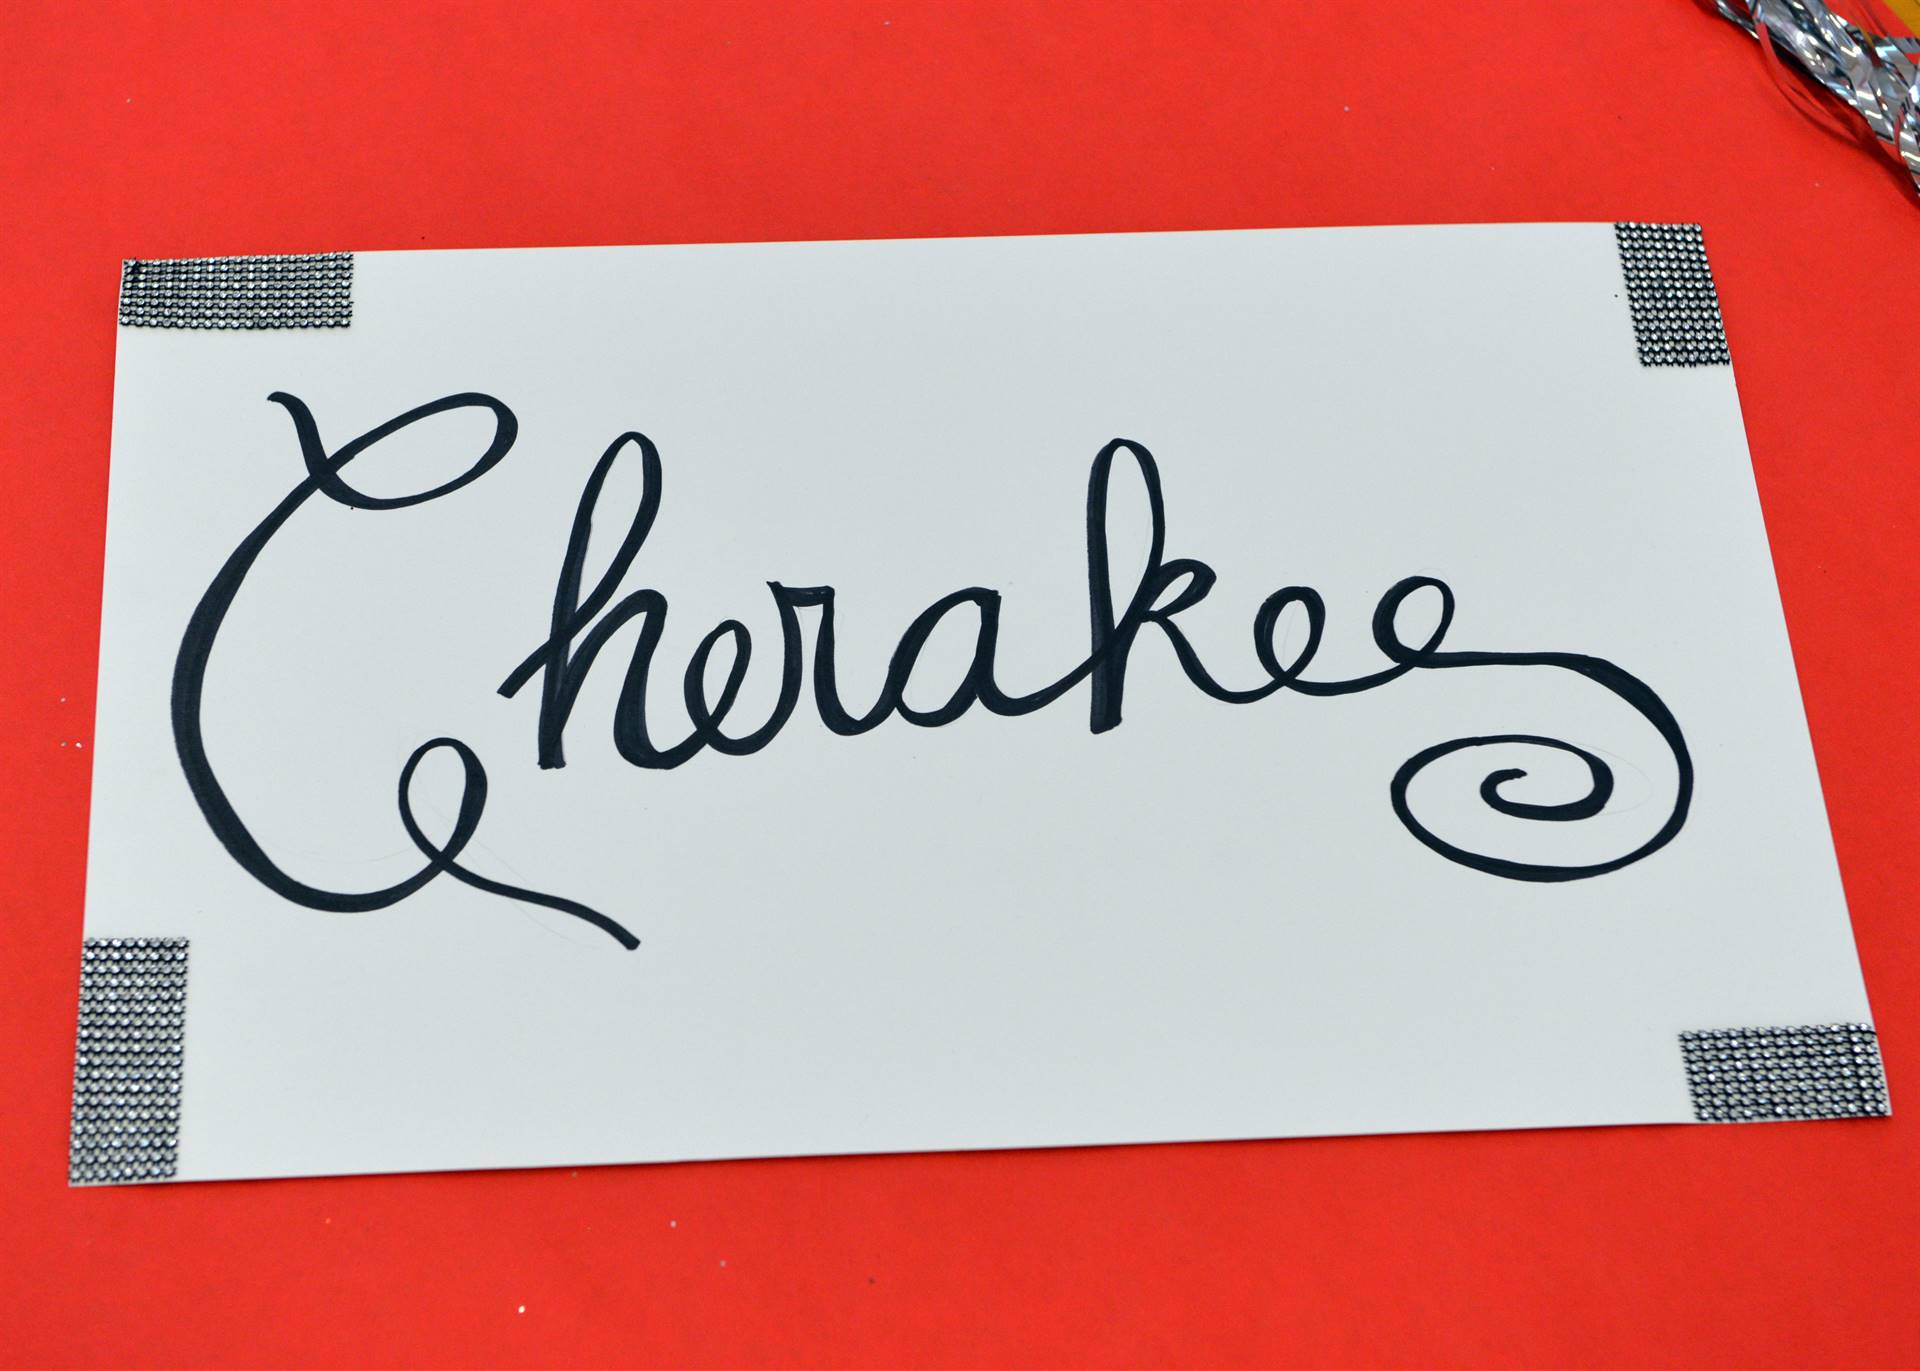 Homecoming name Cherakee